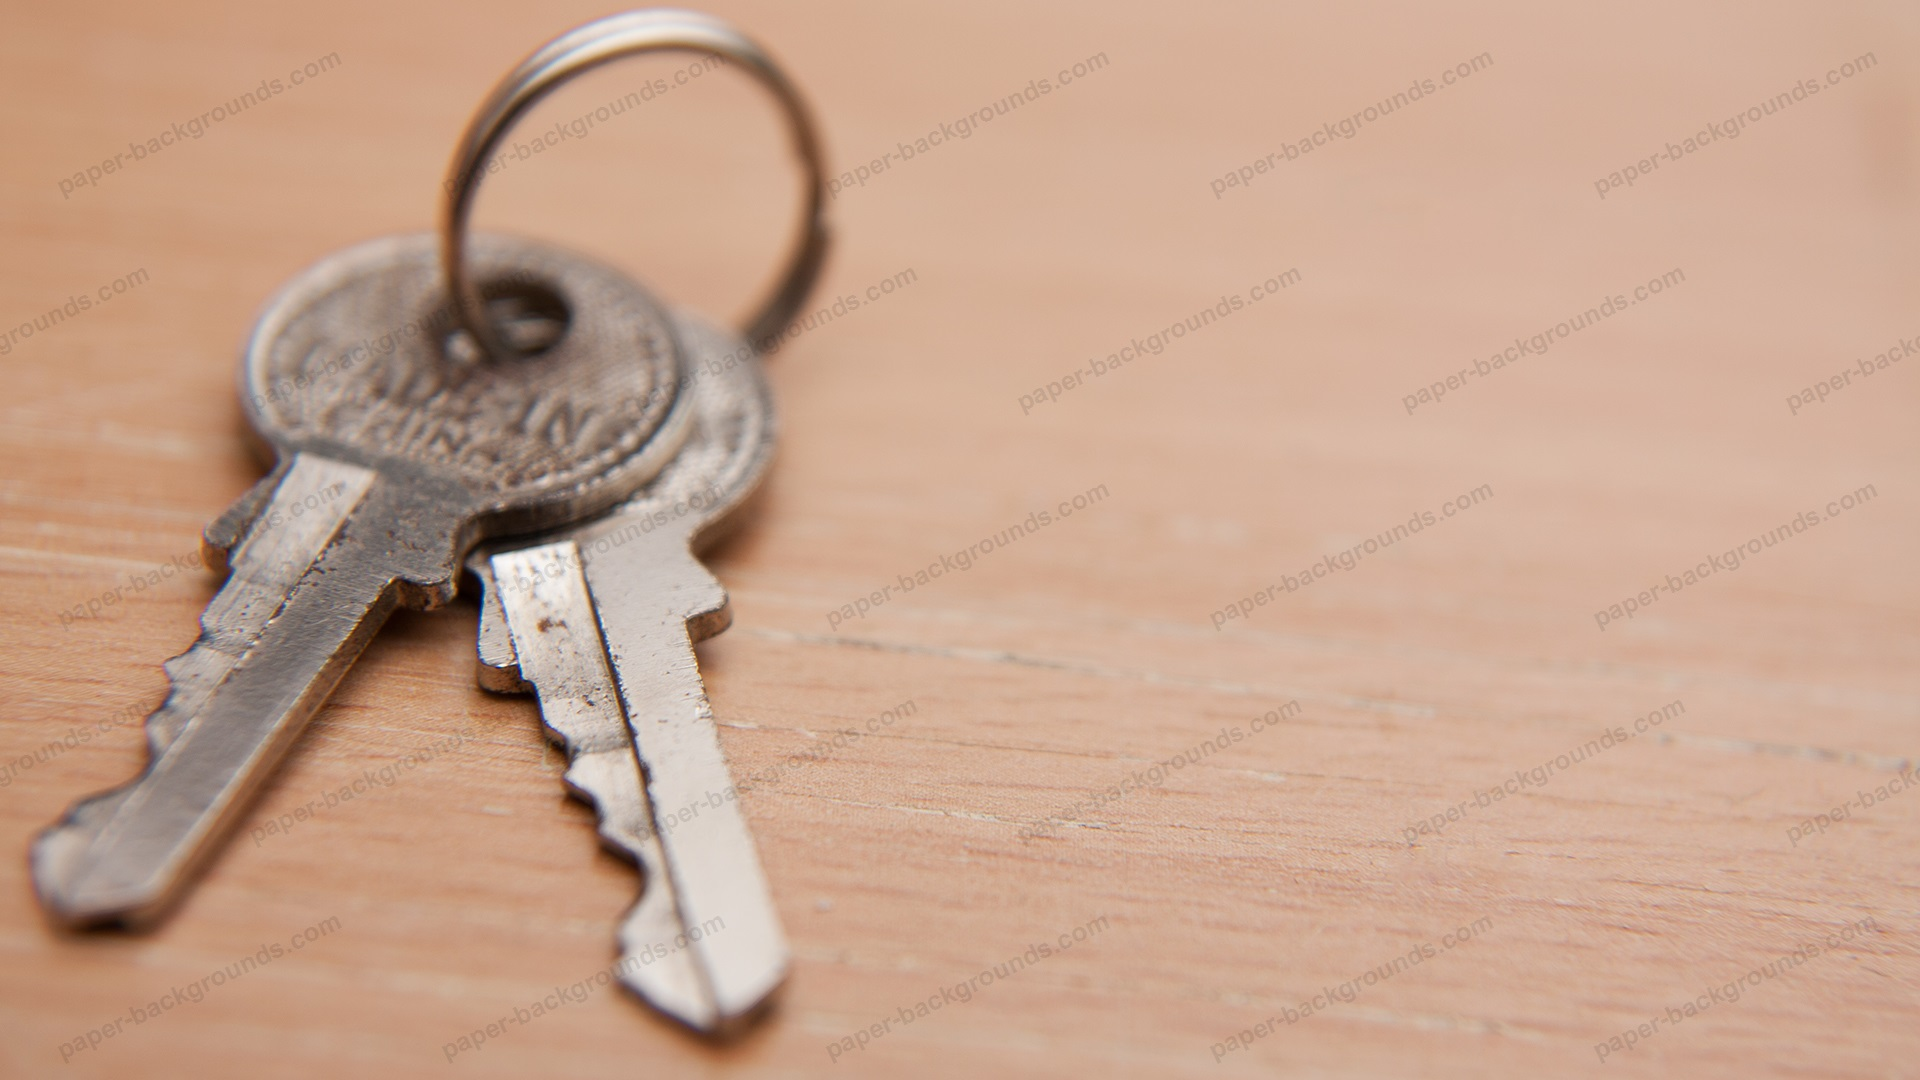 Keys On Table Background HD 1920 x 1080p